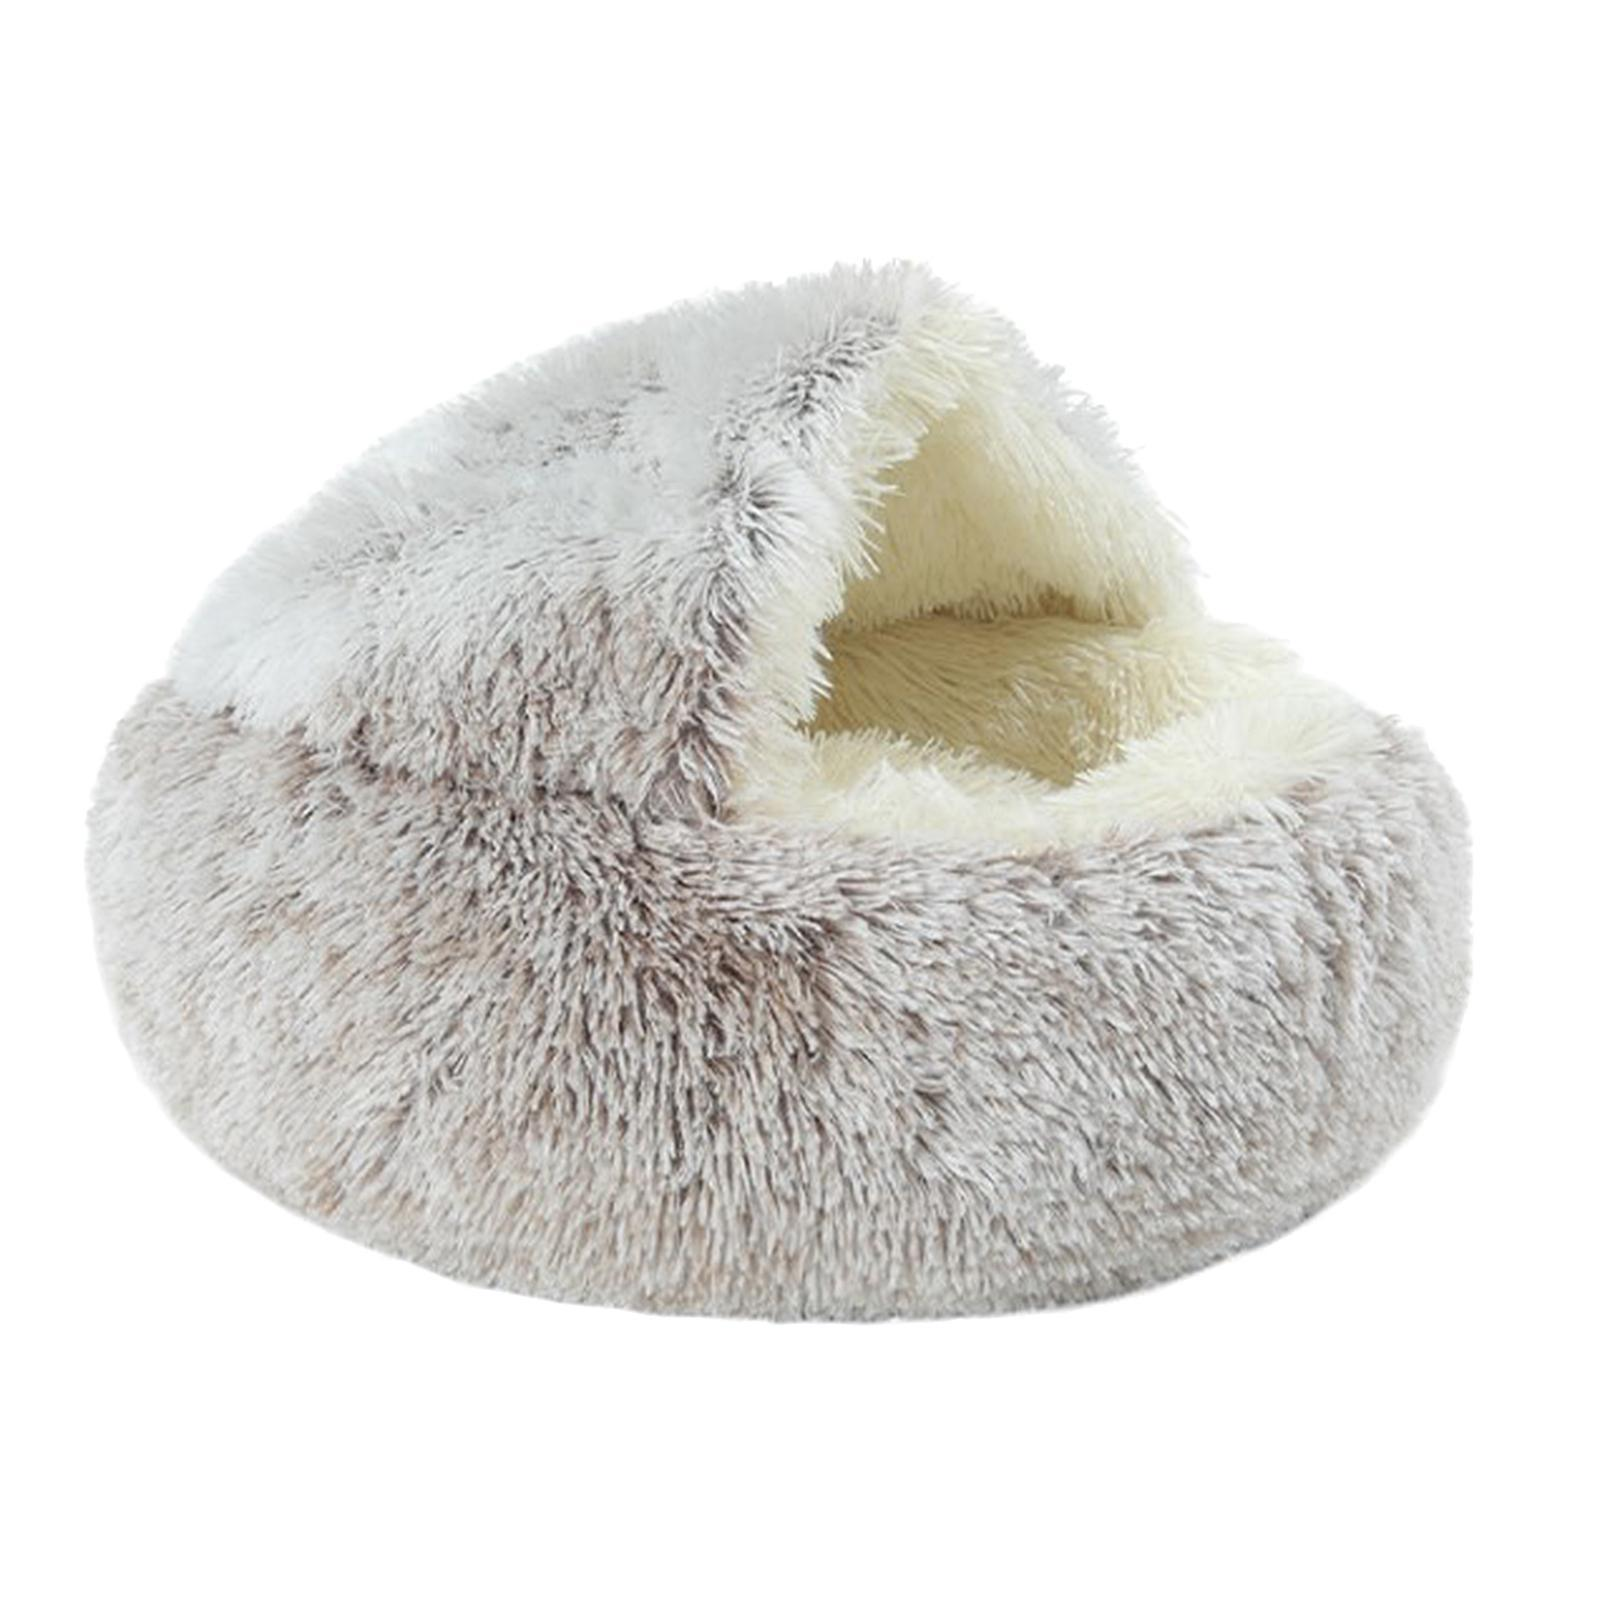 thumbnail 30 - Plush Pet Dog Cat Bed Fluffy Soft Warm Calming Bed Sleeping Kennel Cave Nest